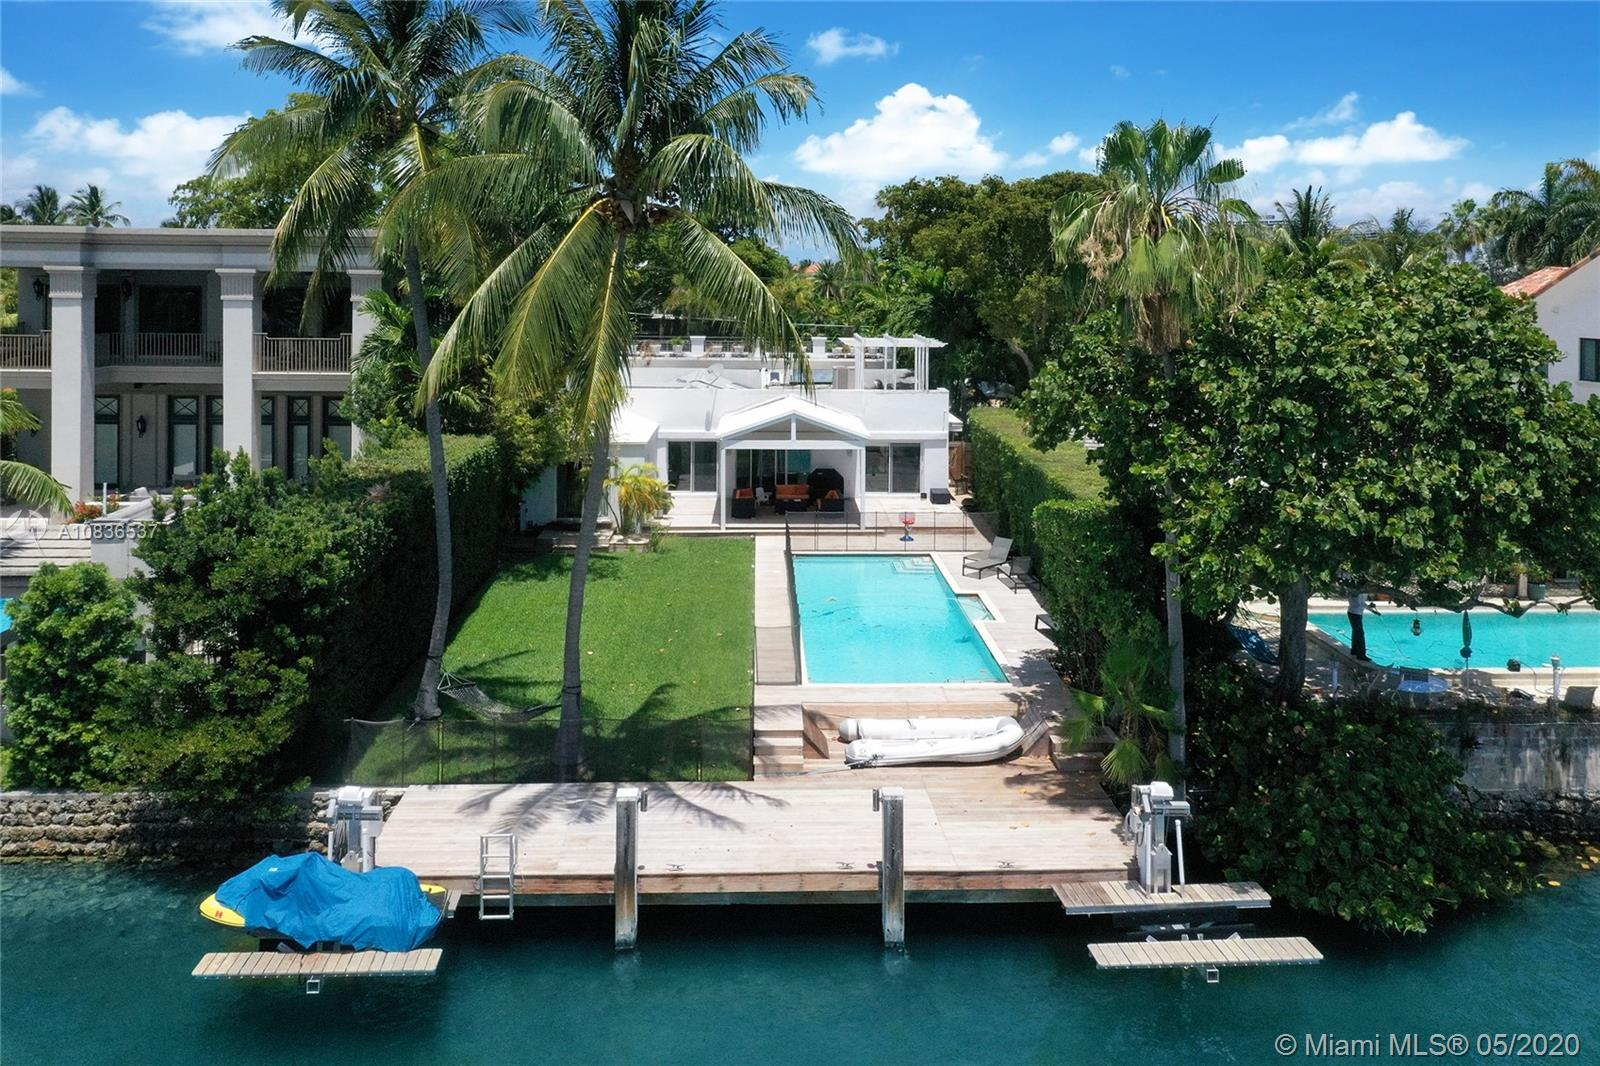 The least expensive waterfront property on exclusive gated Hibiscus Island in South Beach, minutes from World famous Ocean Drive, Downtown Miami & Brickell. Make it your home or tear it down & build another luxurious Palace on the Island! One of the last waterfront homes or site available at close to land value. The Island also includes tennis courts for outdoor sports. The private dock for your boat & jet ski lifts overlook the peaceful wide canal. Property has direct access to the Intracoastal Waterways & the Ocean. Great floor plan: a separate wing at entrance leads to 2 bed/2 baths. Den/office enjoys the entire living area. 2 master suites open to the pool deck & overlook the  Palaces of Palm Island across the sparkling blue waters. Enjoy South exposure & Downtown views! CASH DEAL ONLY